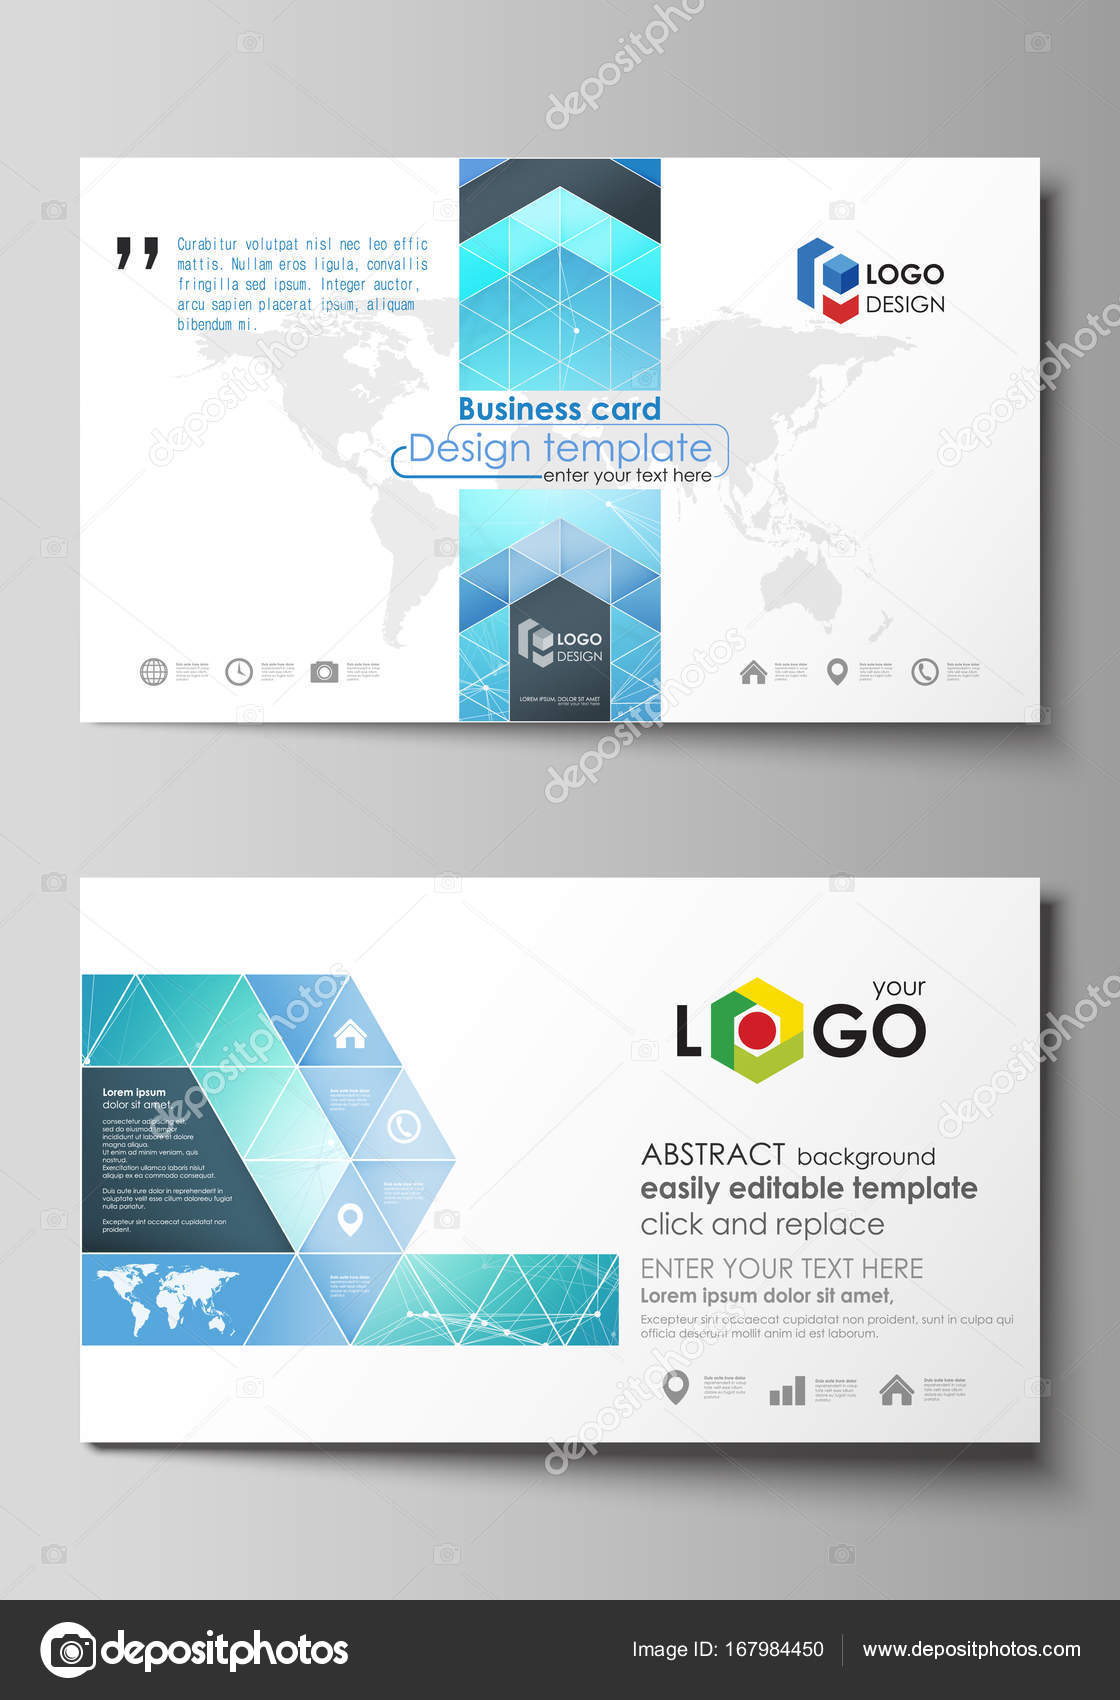 Business card templates easy editable layout abstract vector business card templates easy editable layout abstract vector design template chemistry pattern connecting lines and dots molecule structure wajeb Image collections